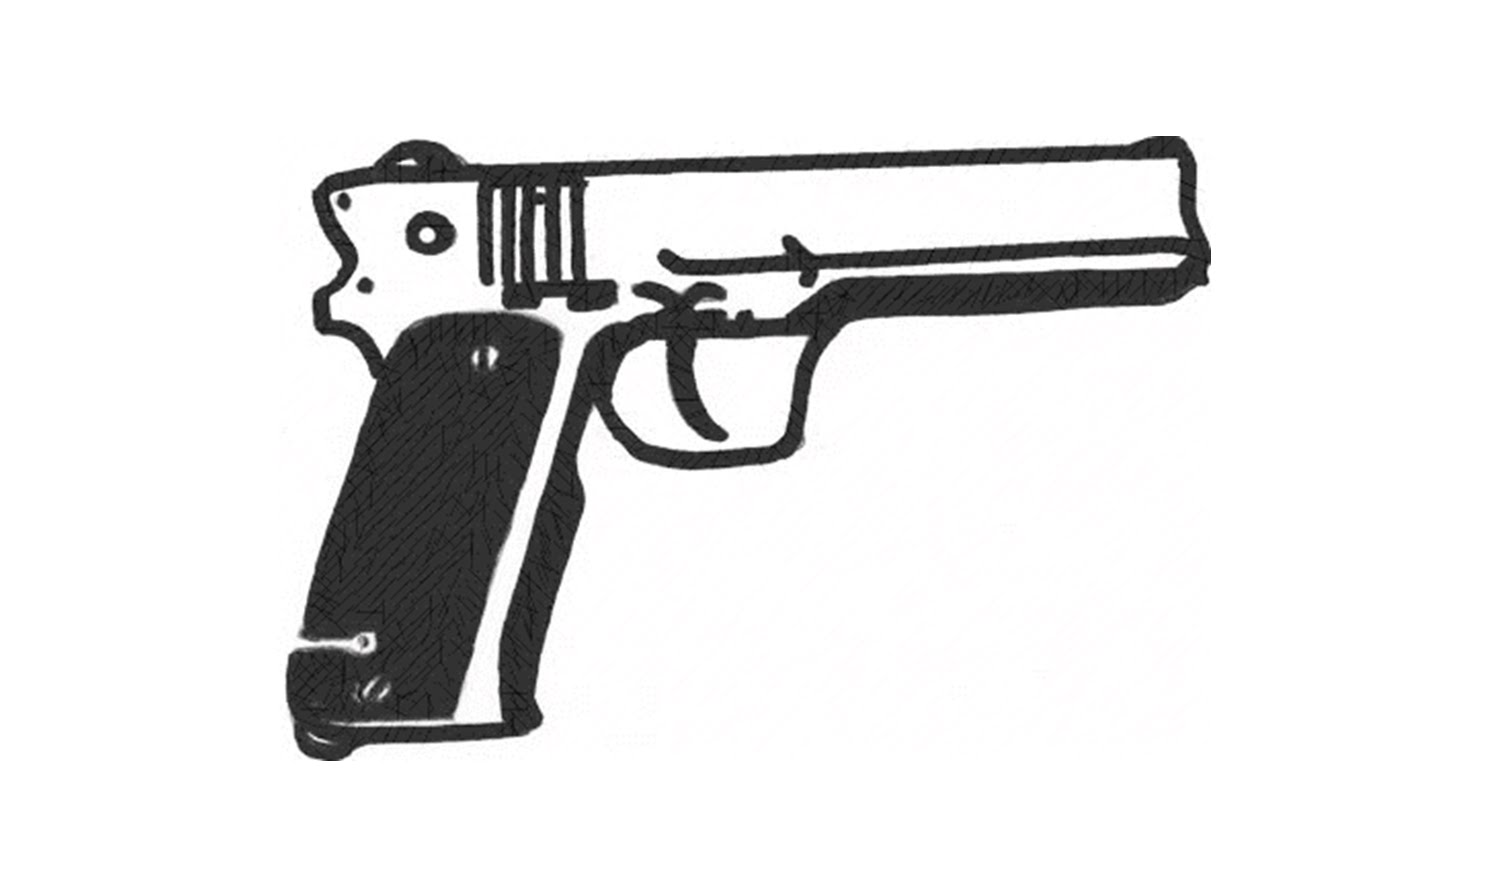 Drawn pistol hand holding To a revolver Draw a